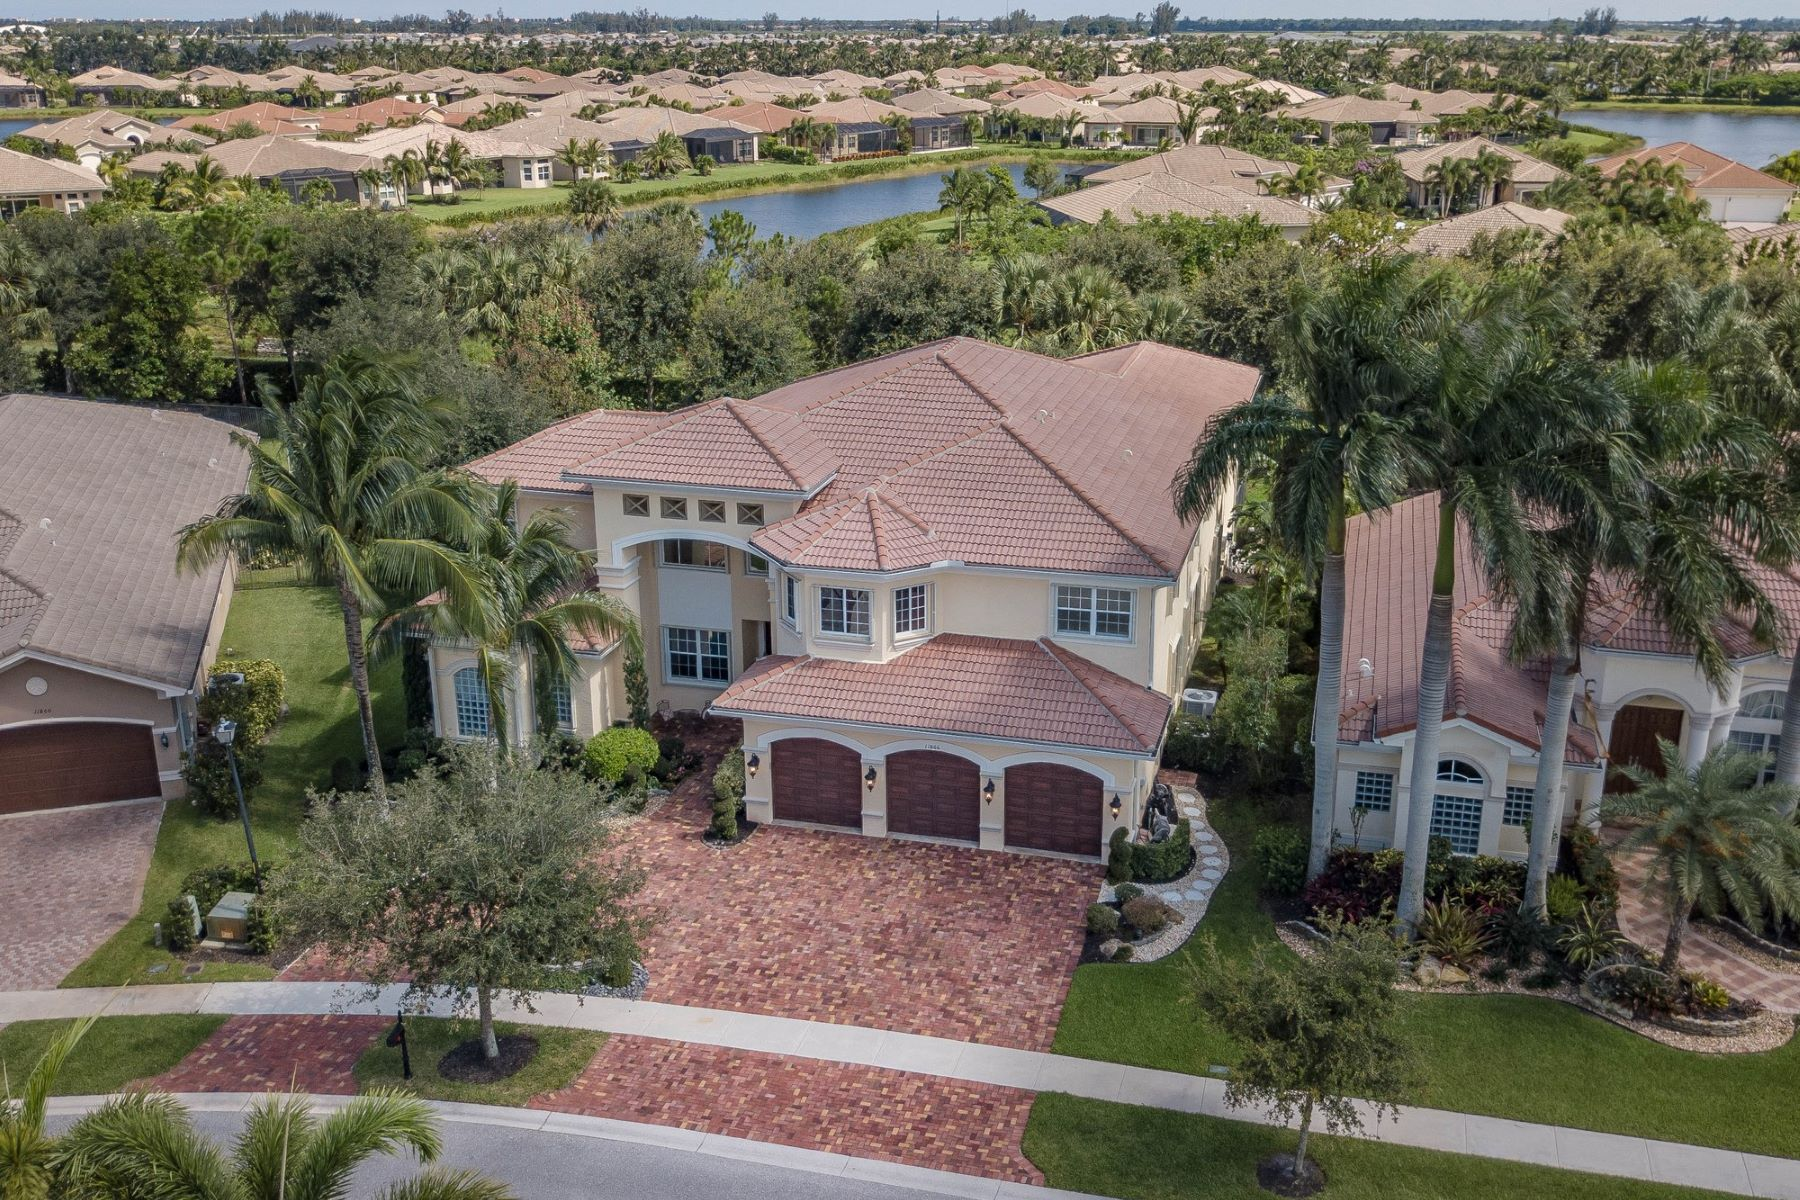 House for Sale at 11866 Windmill Lake Dr , Boynton Beach, FL 33473 11866 Windmill Lake Dr Boynton Beach, Florida 33473 United States